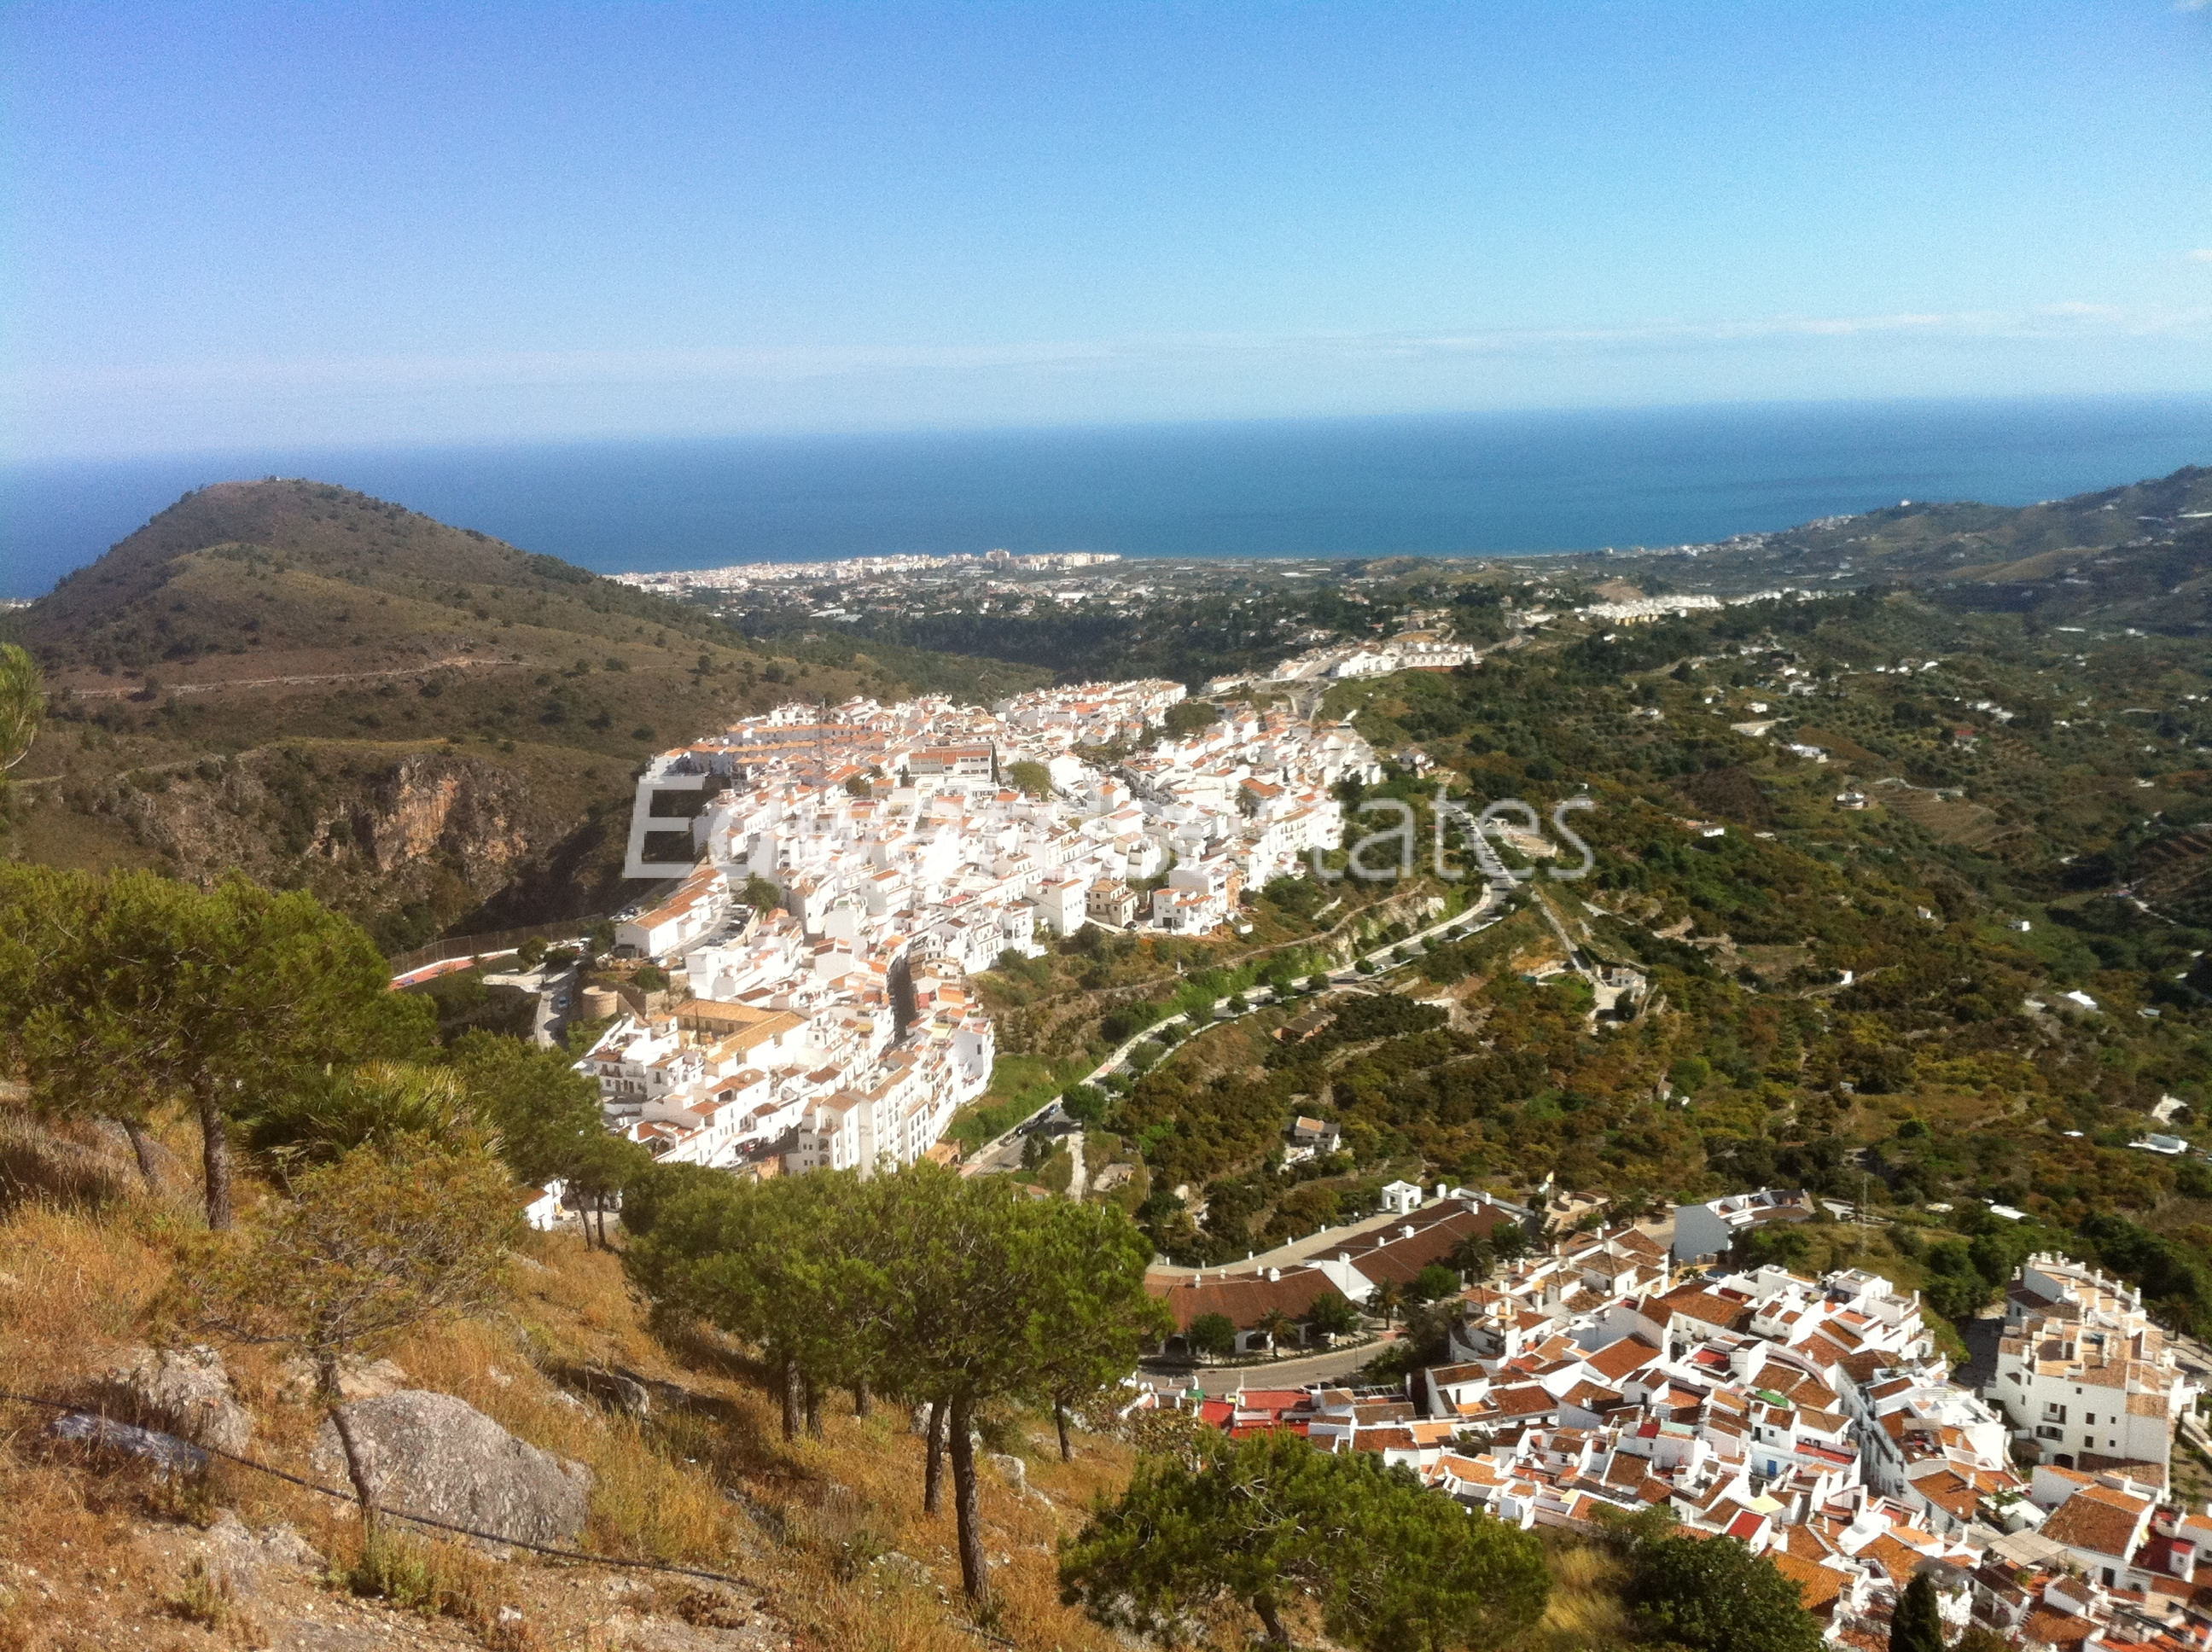 FRIGILIANA - An Advertising Hot Spot